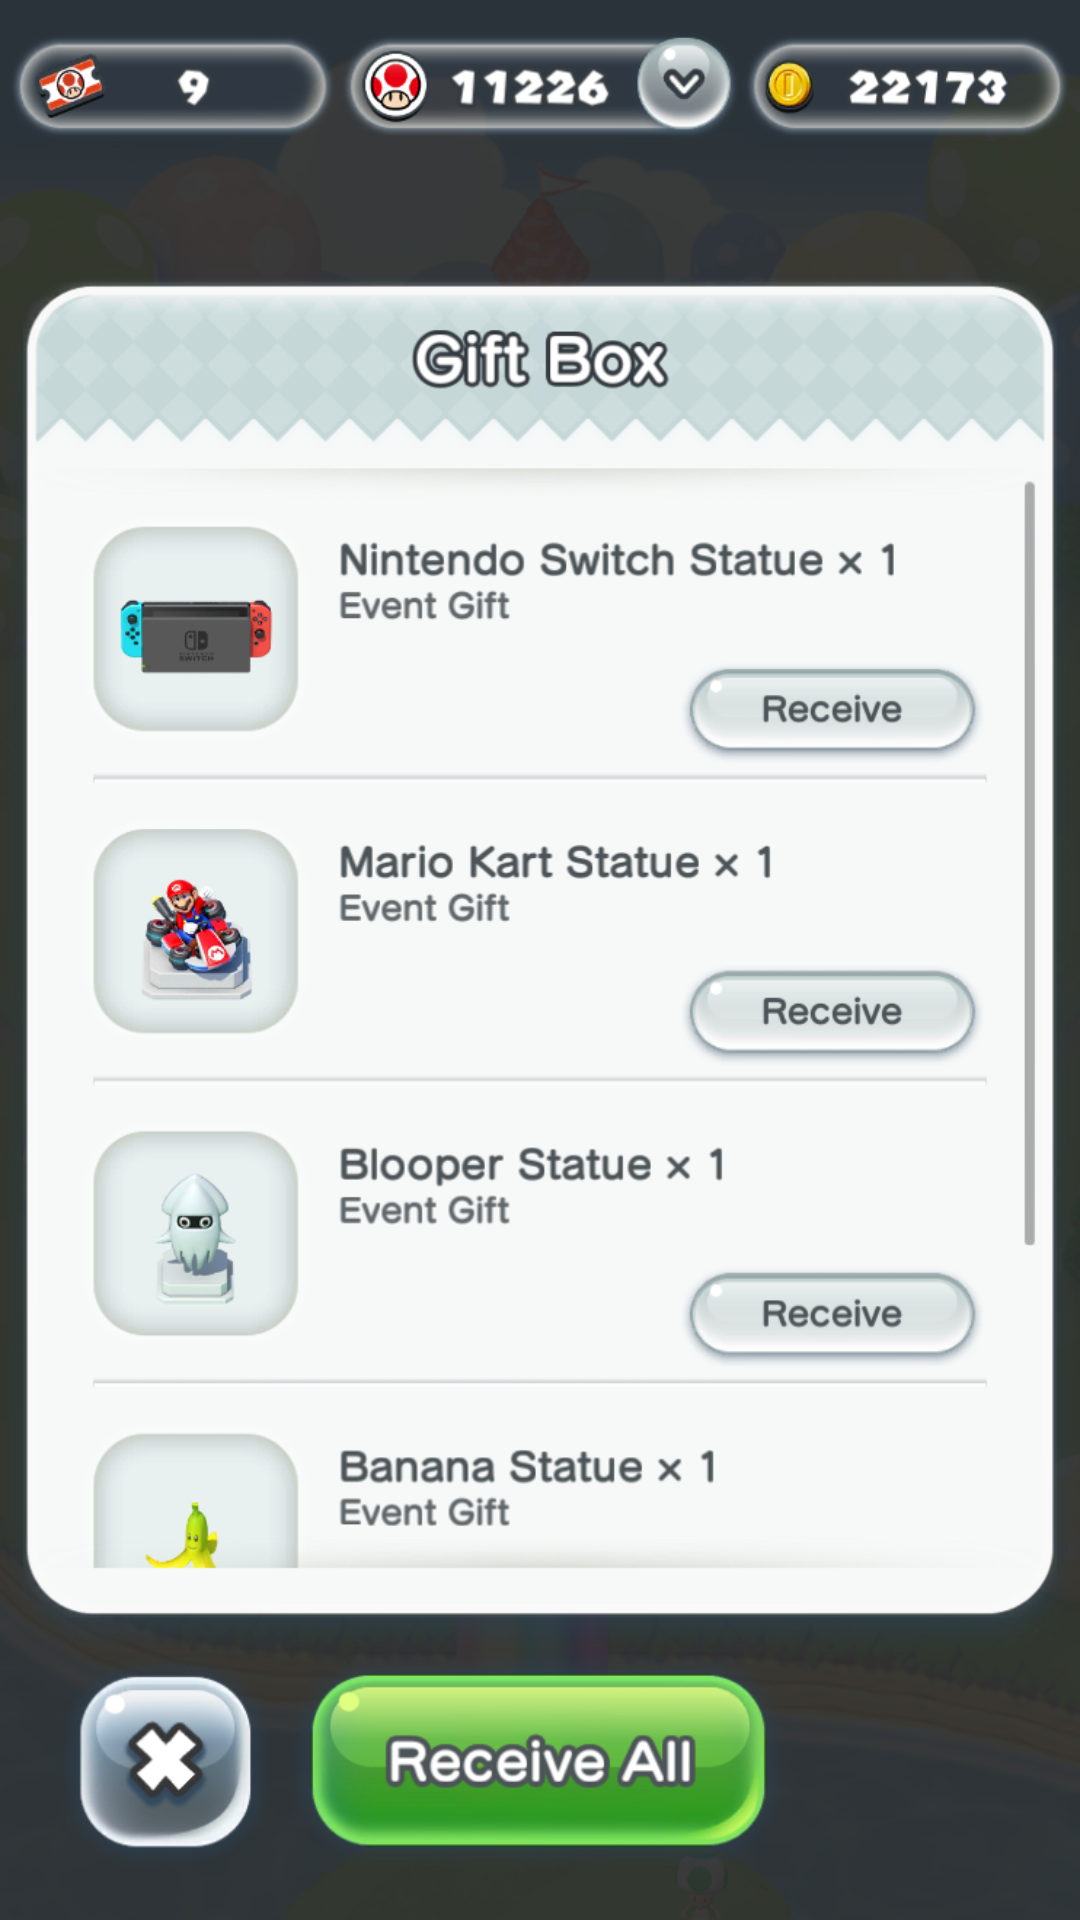 All event decorations in Gift Box